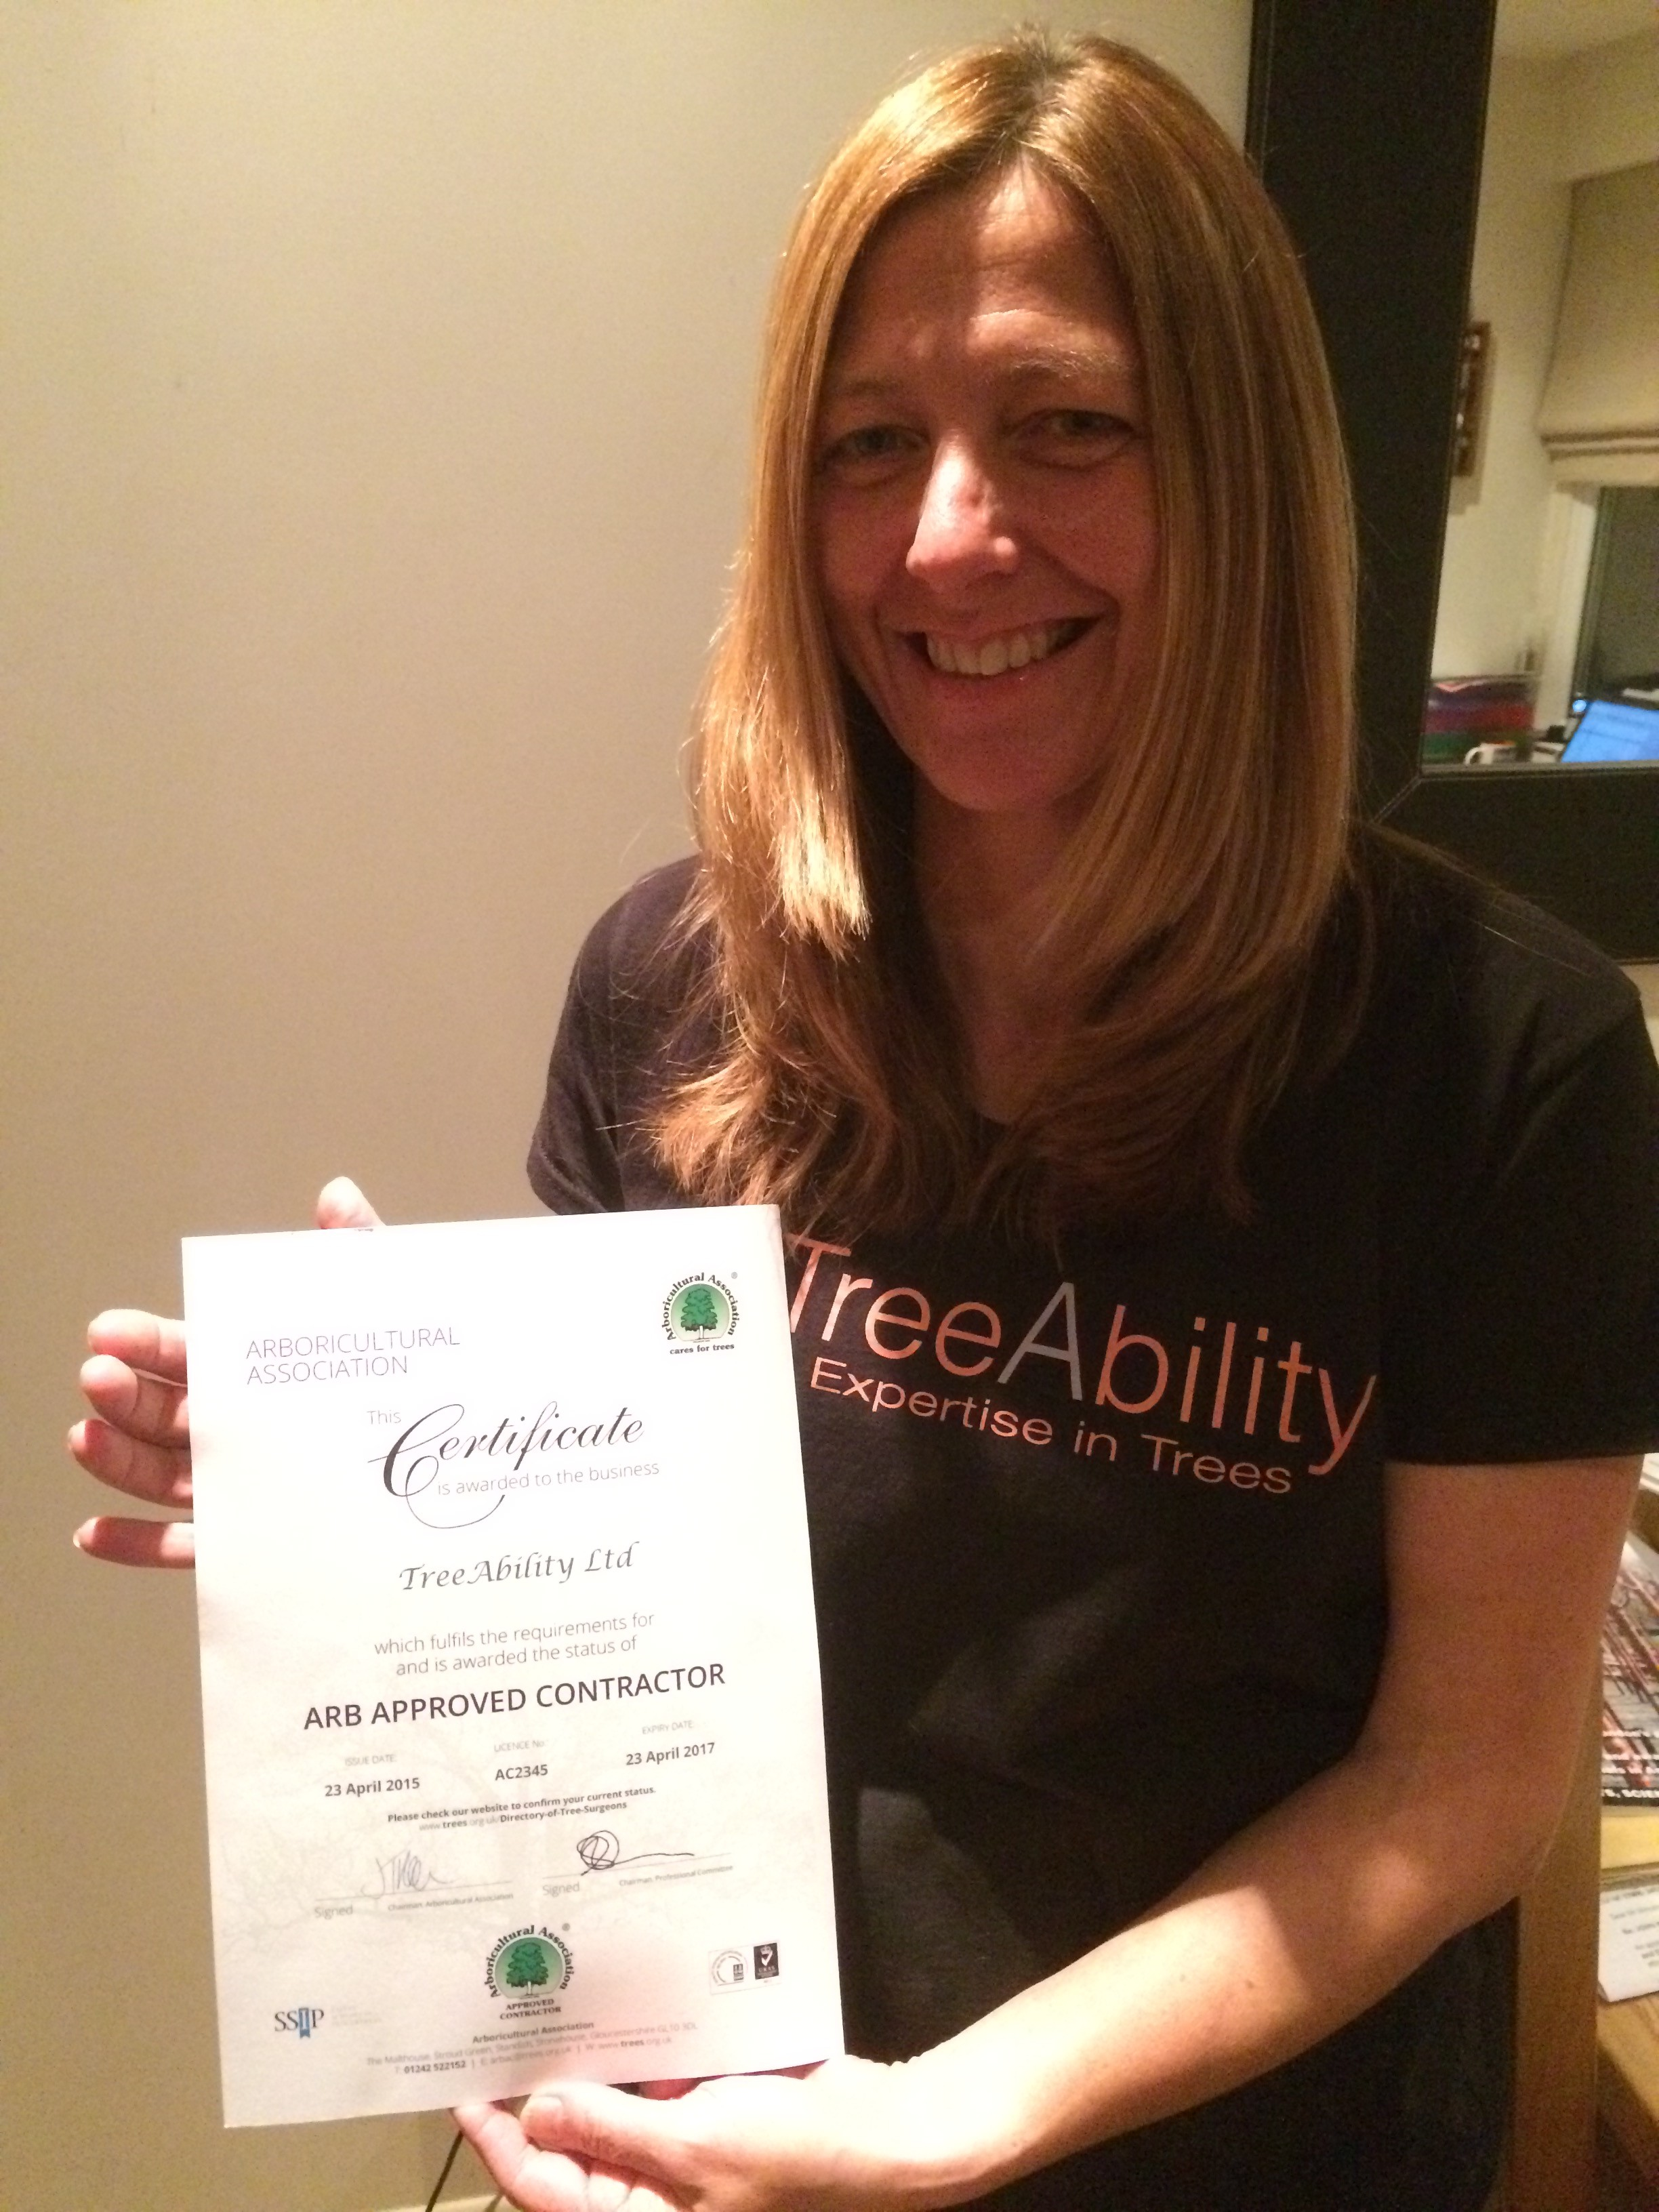 TreeAbility Arboricultural Association Certificate